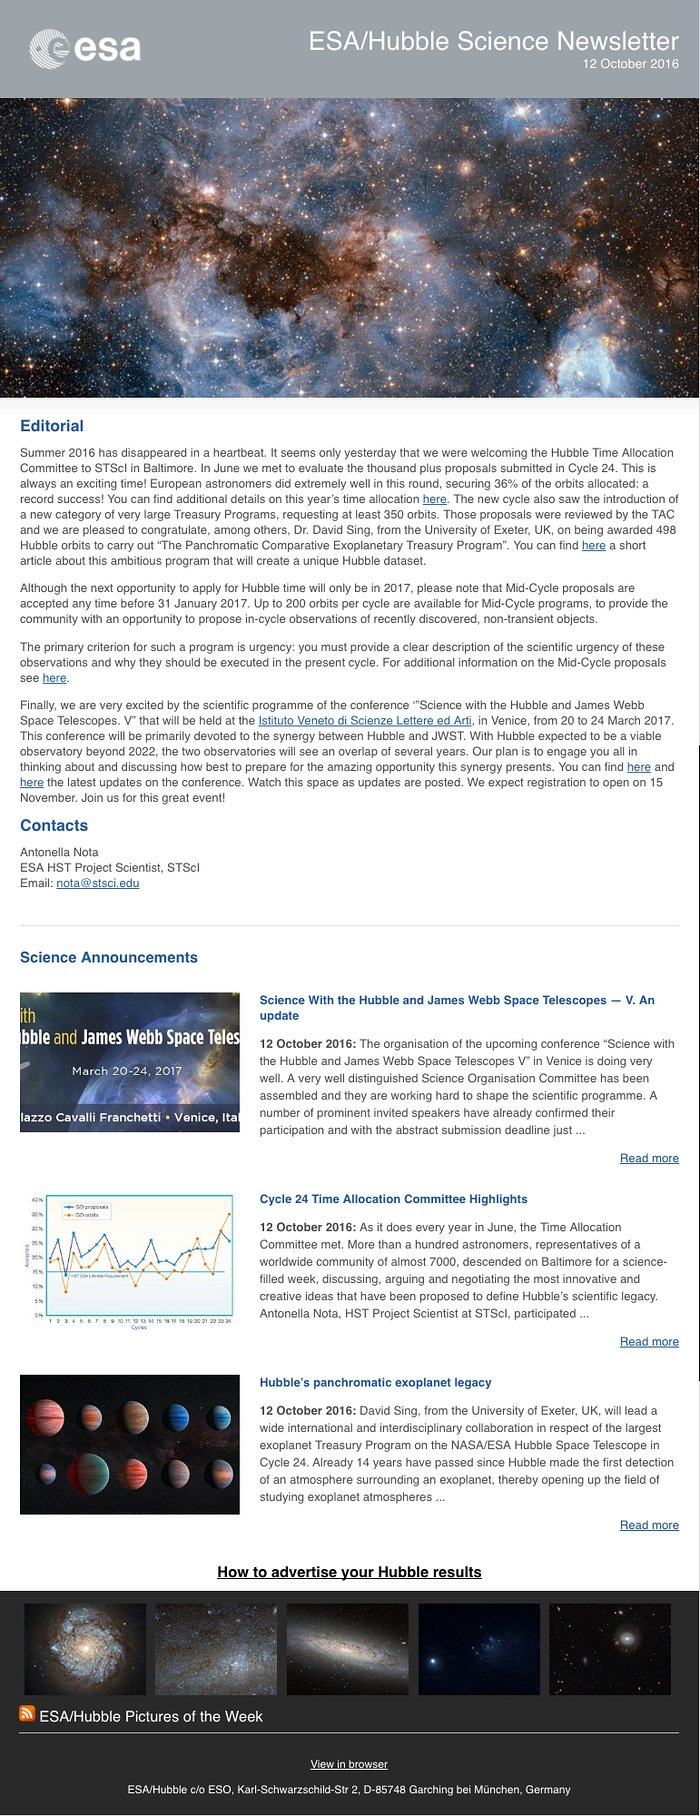 Screenshot of the October issue of ESA/Hubble Science Newsletter